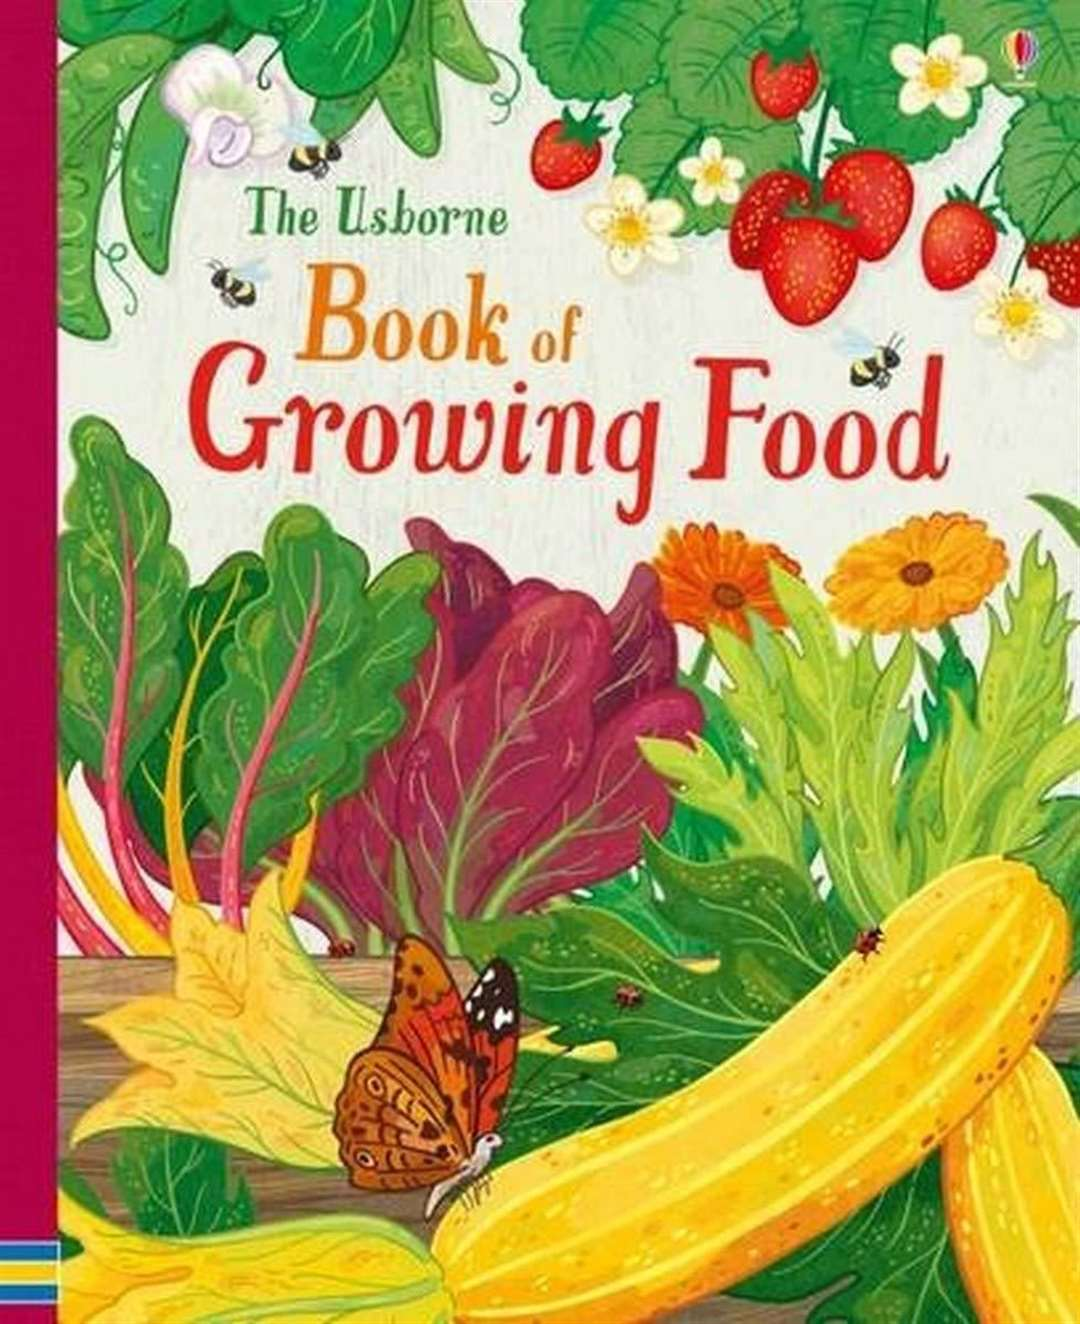 The Usborne Book of Growing Food by Abigail Wheatley and Anni Betts (46204150)